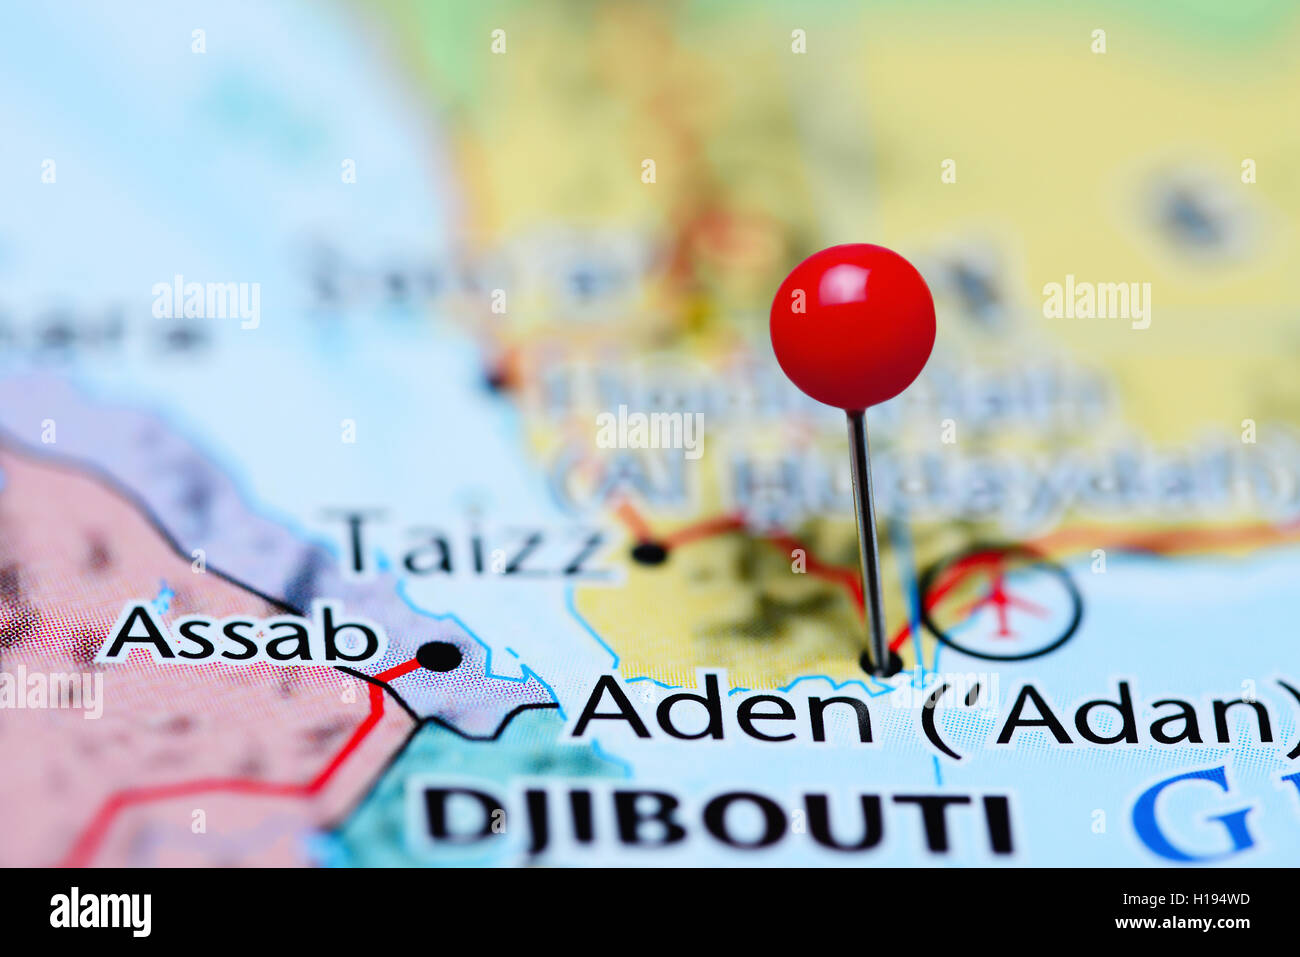 Aden pinned on a map of Yemen - Stock Image